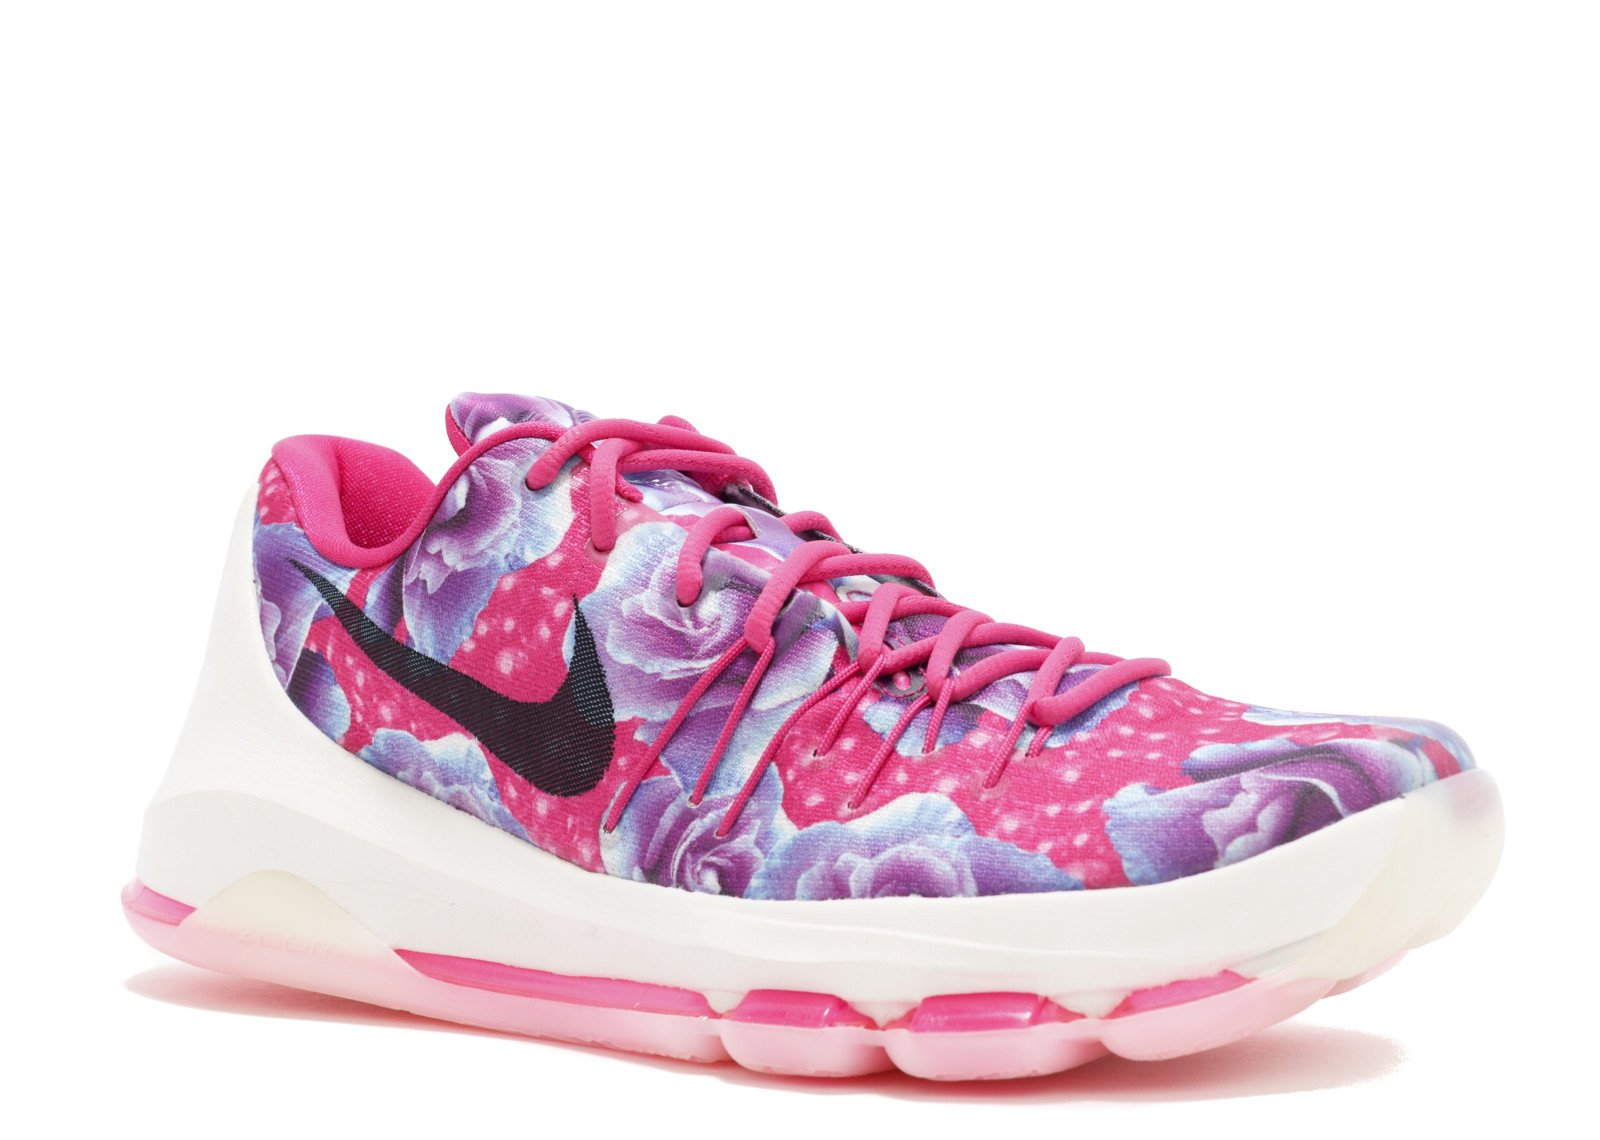 Nike Mens KD 8 PRM Aunt Pearl Vivid Pink/Black-Phantom Synthetic (8)